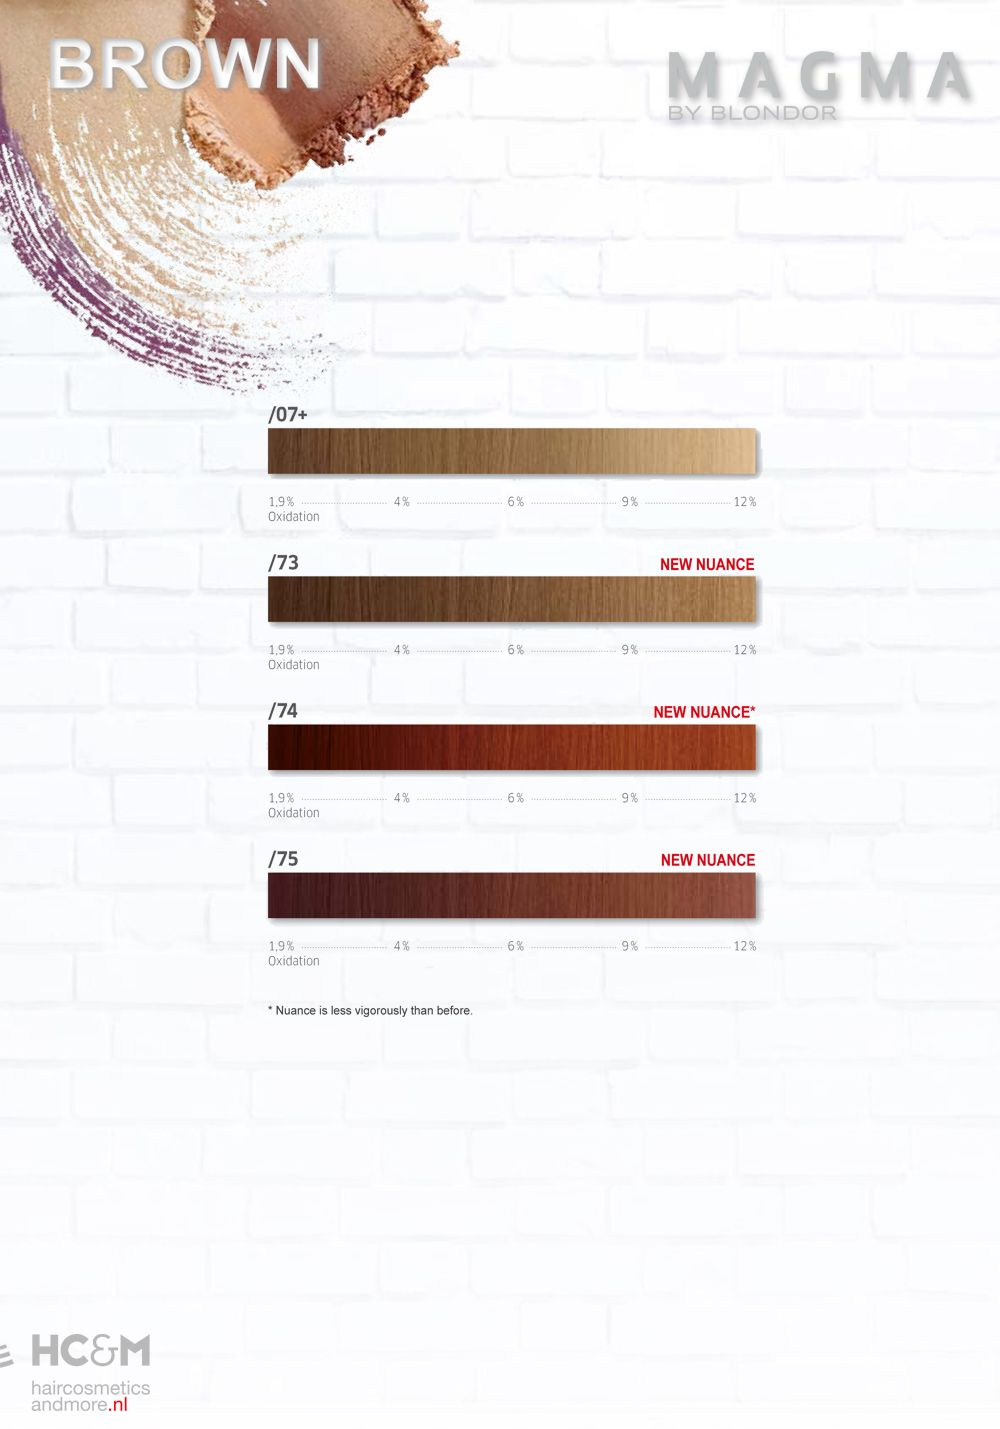 Magma by blondor brown nuances top stylist color charts hairstylists hair colour also wella pinterest rh